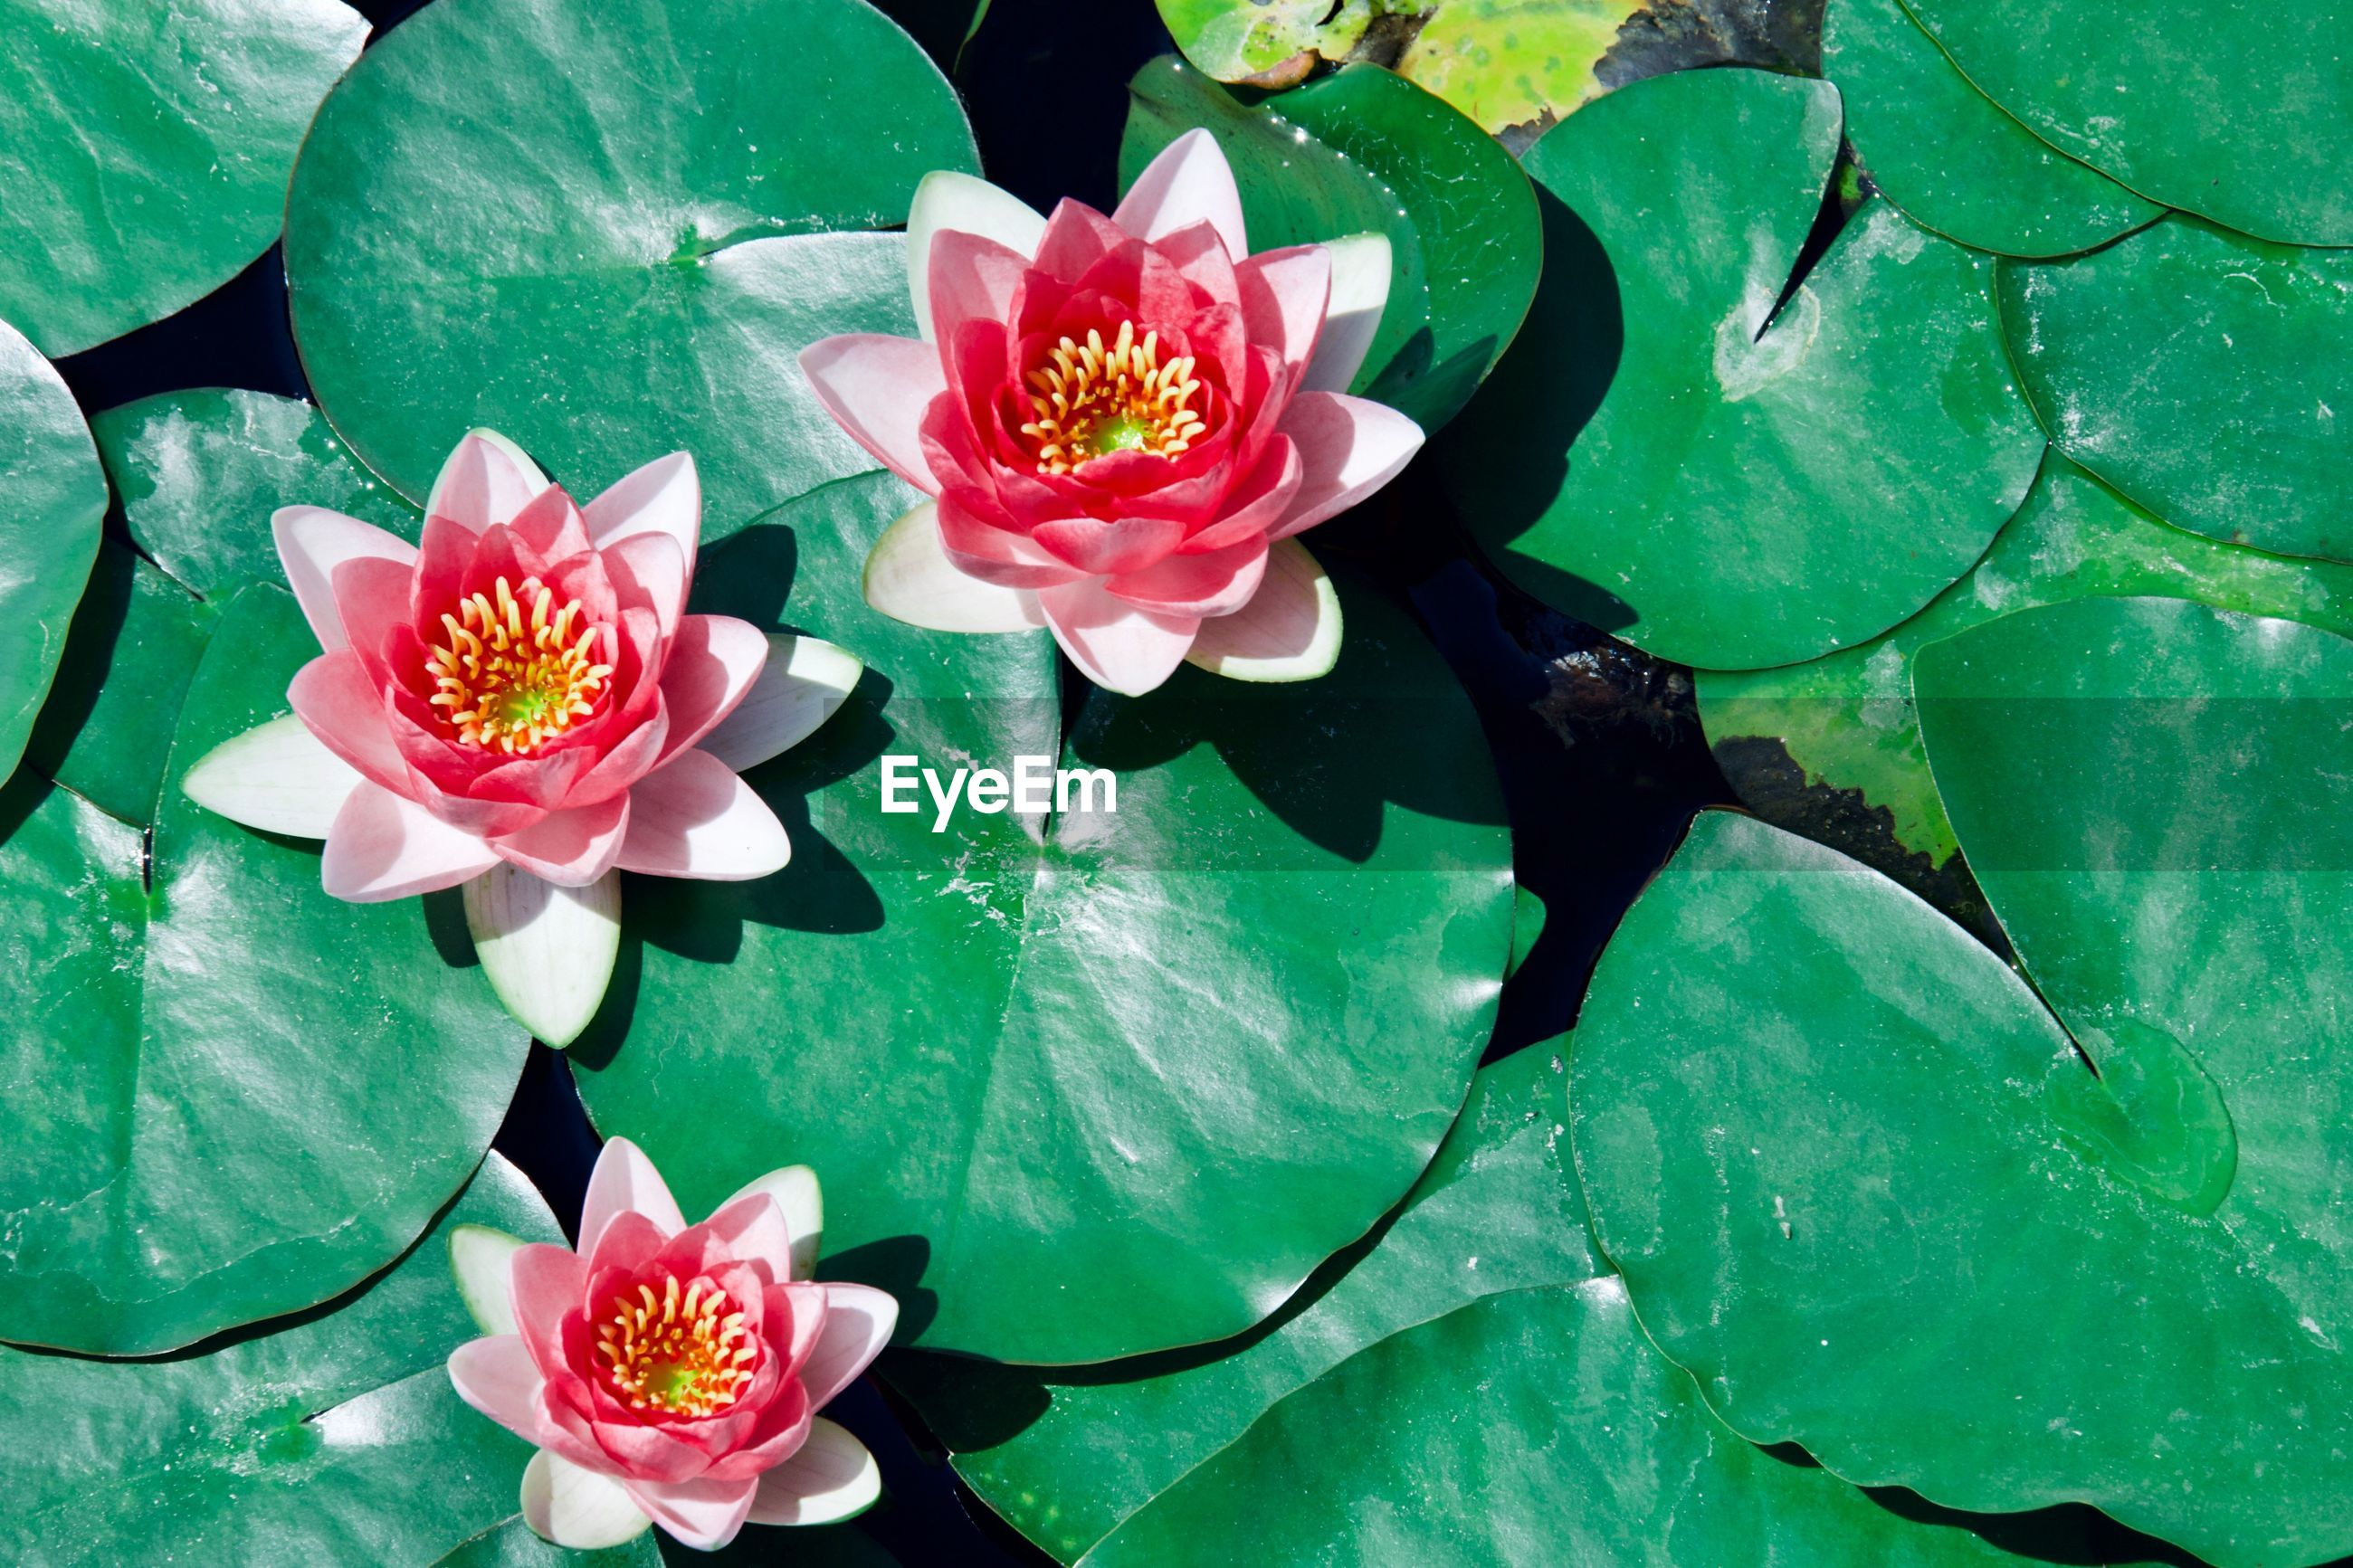 flower, flowering plant, plant, beauty in nature, freshness, leaf, fragility, plant part, vulnerability, petal, flower head, inflorescence, growth, pink color, nature, water lily, close-up, water, pond, high angle view, floating on water, lotus water lily, outdoors, no people, pollen